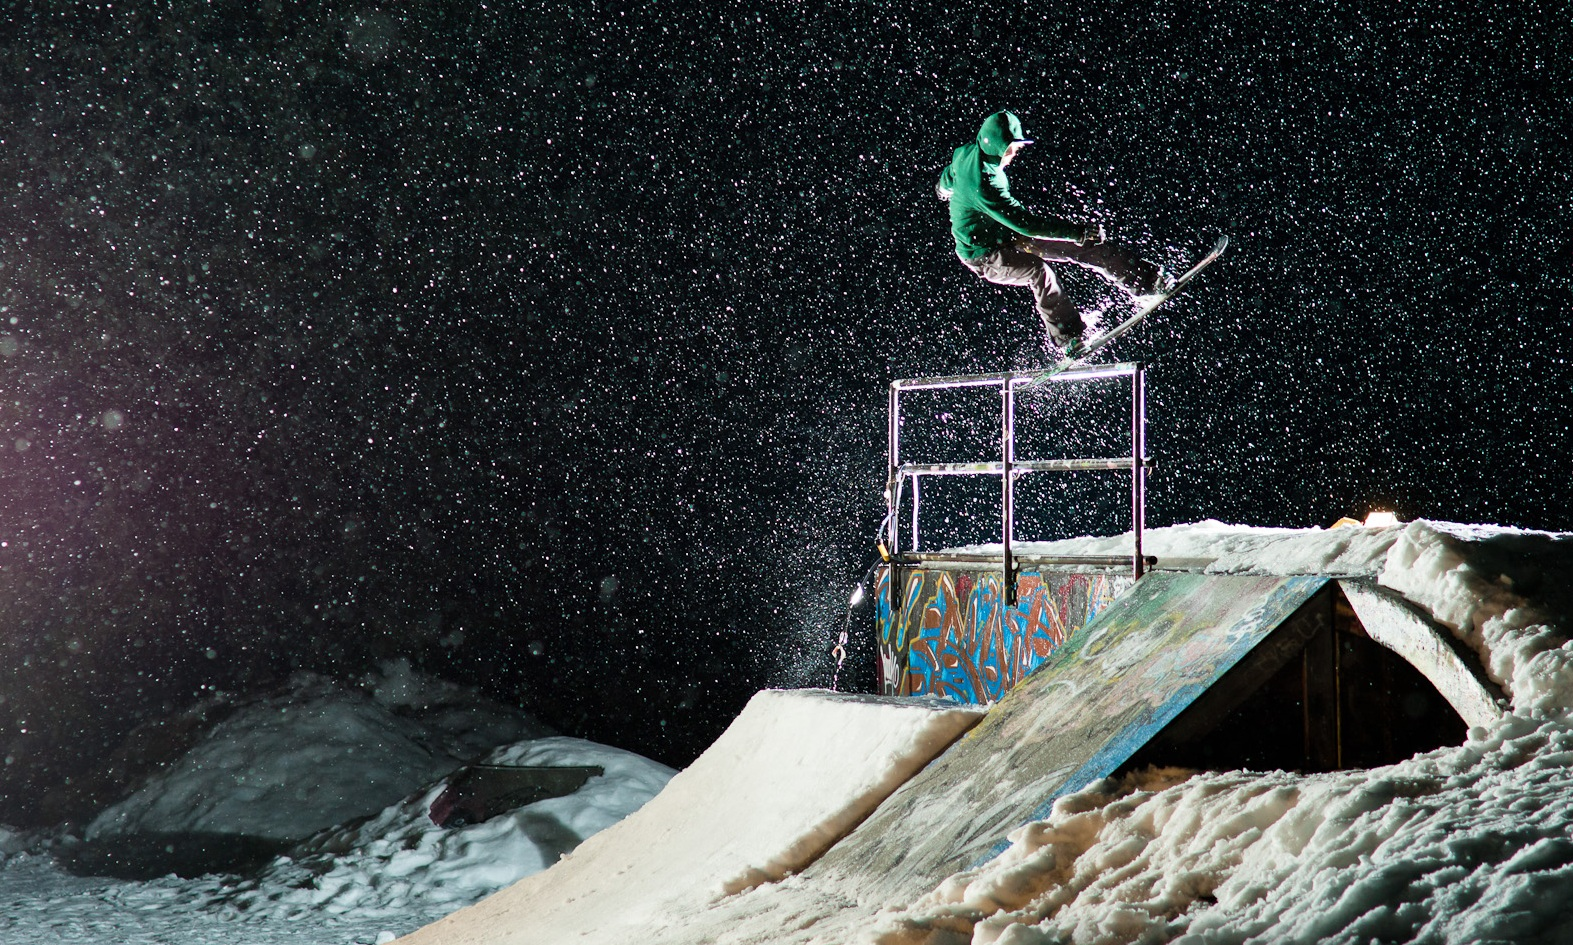 1573x945 - Snowboarding Wallpapers 27